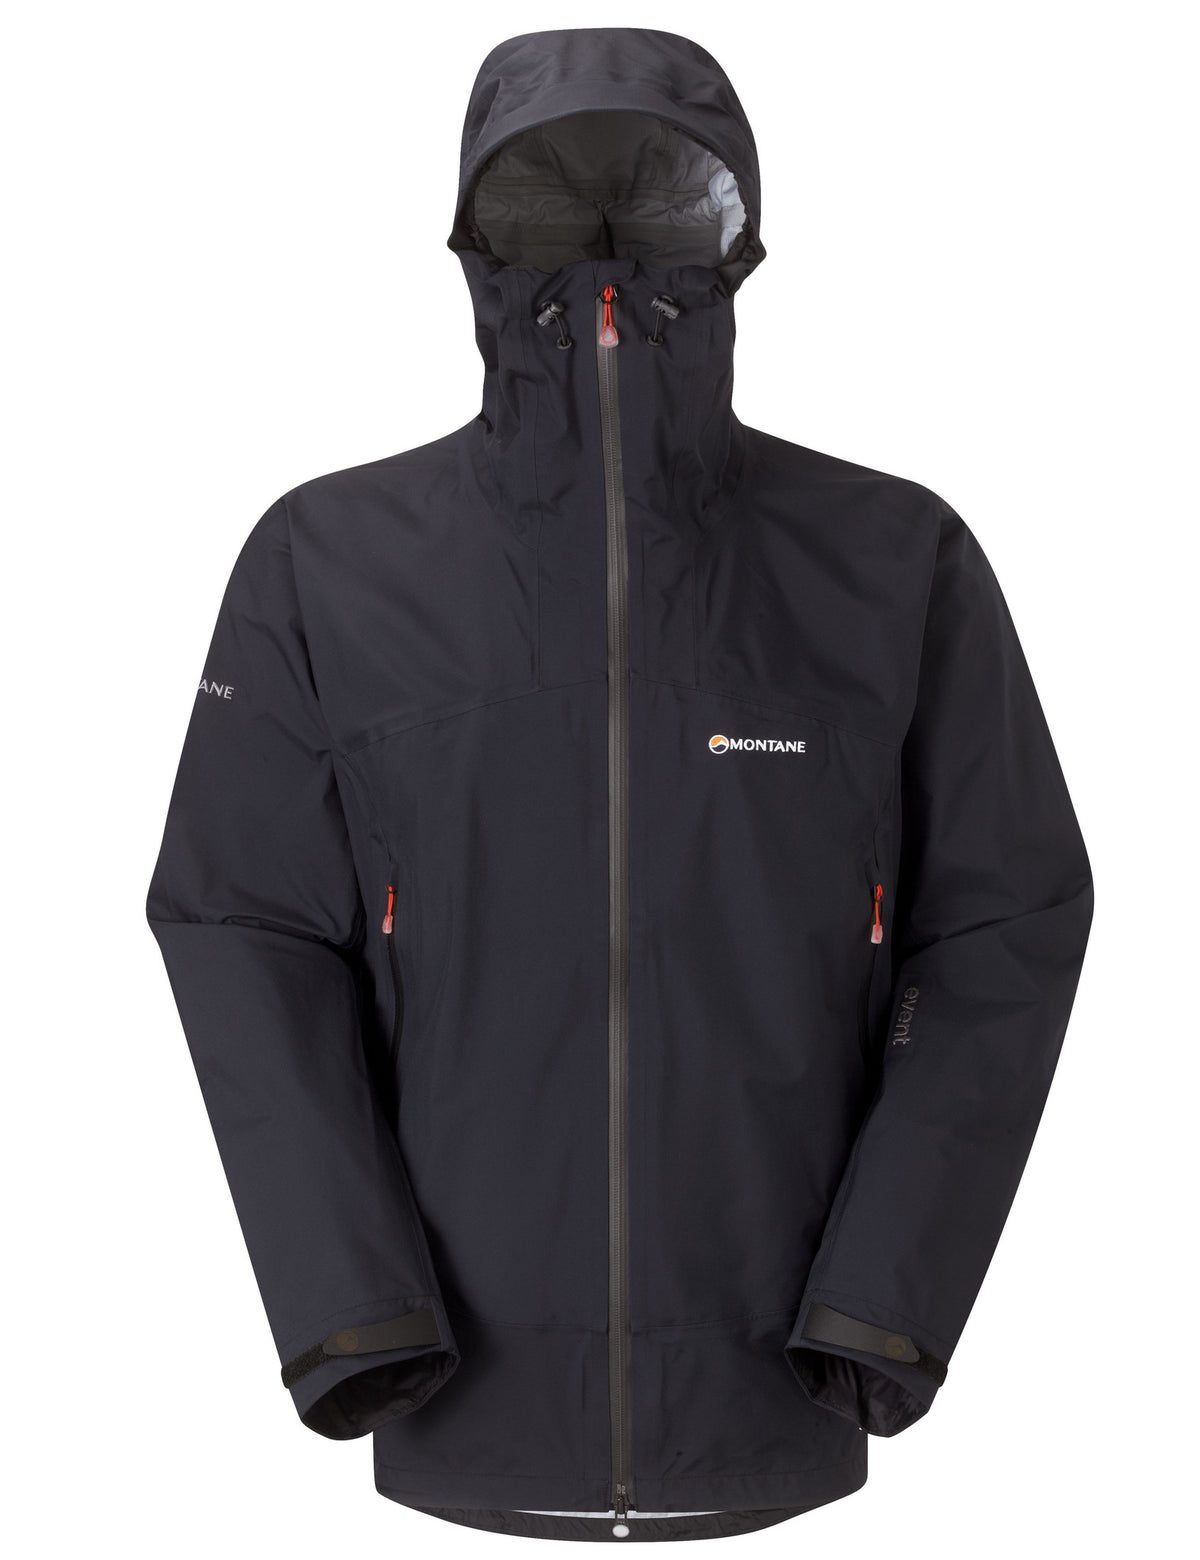 Montane-Women's Direct Ascent eVent¨ Jacket-Women's waterproof-Black-XS-Gearaholic.com.sg